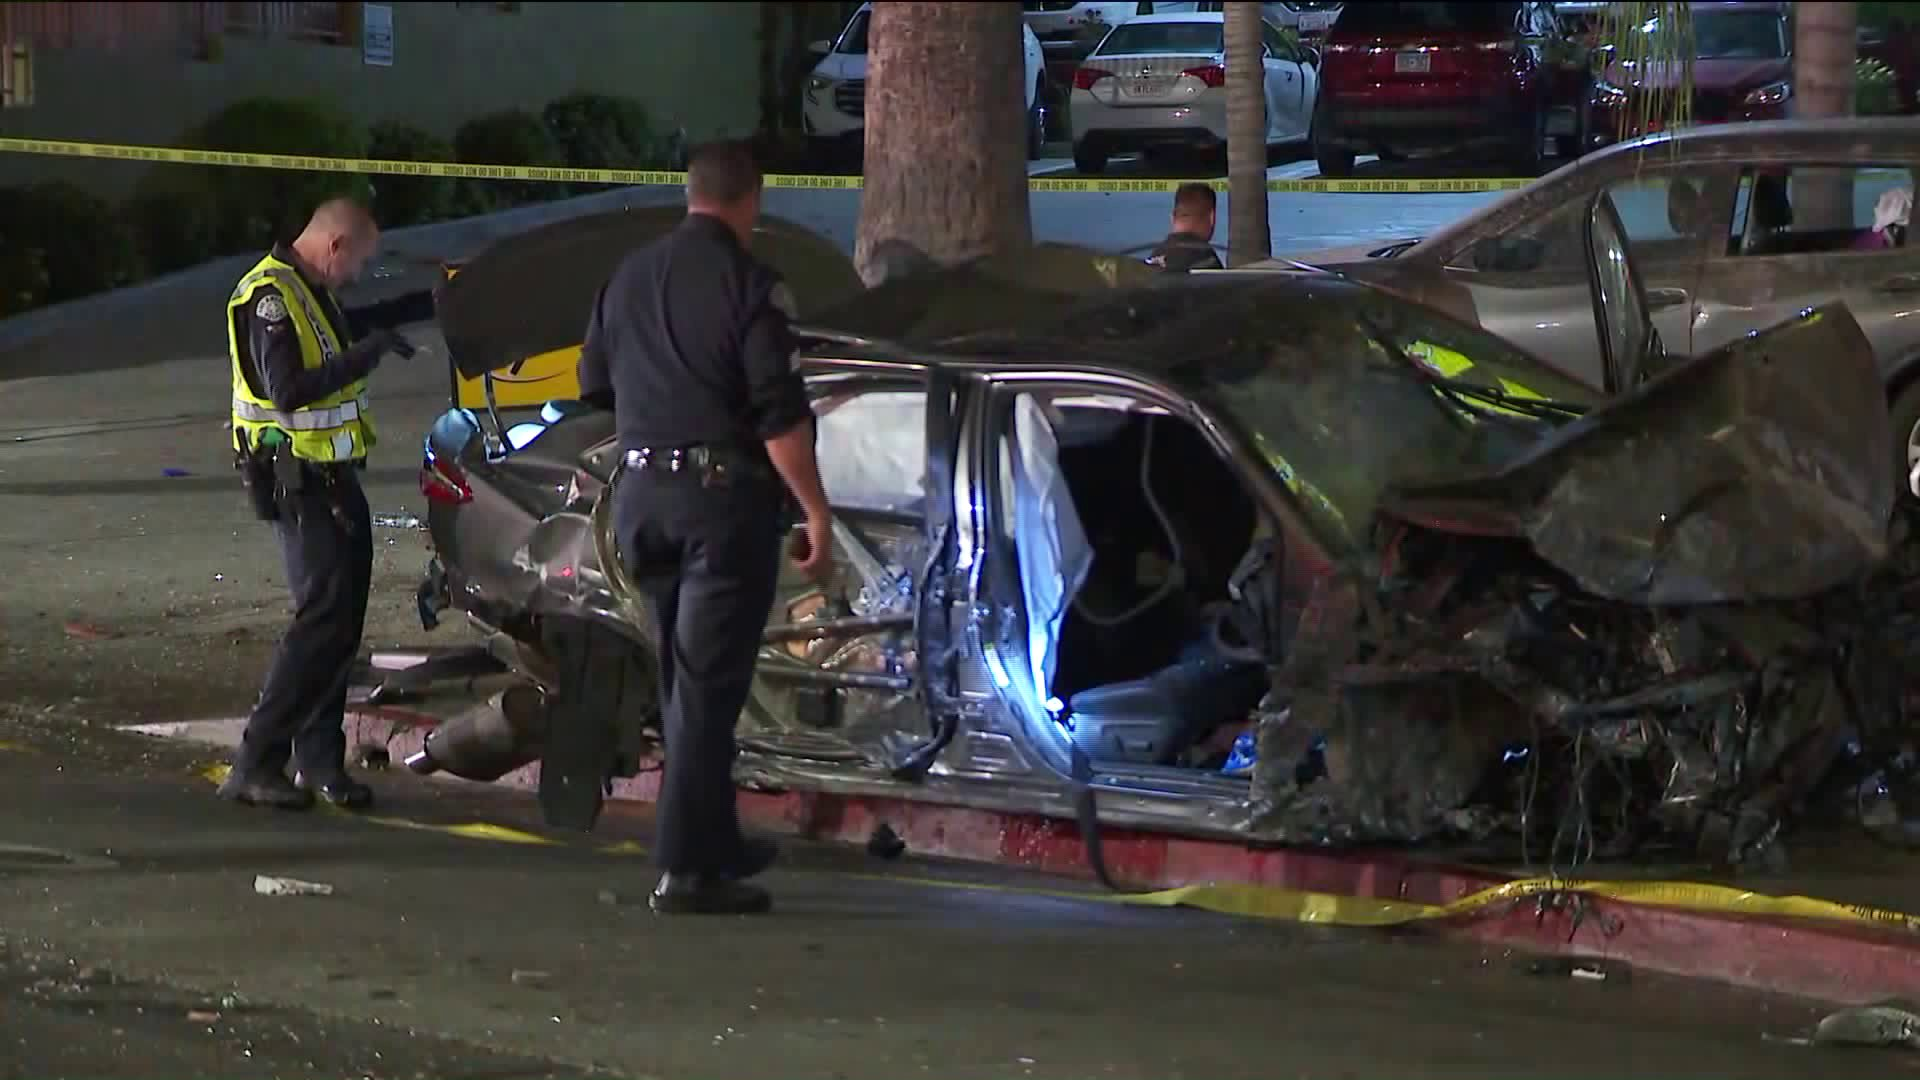 A crash scene is seen in Echo Park on Sep. 9, 2019. (Credit: KTLA)